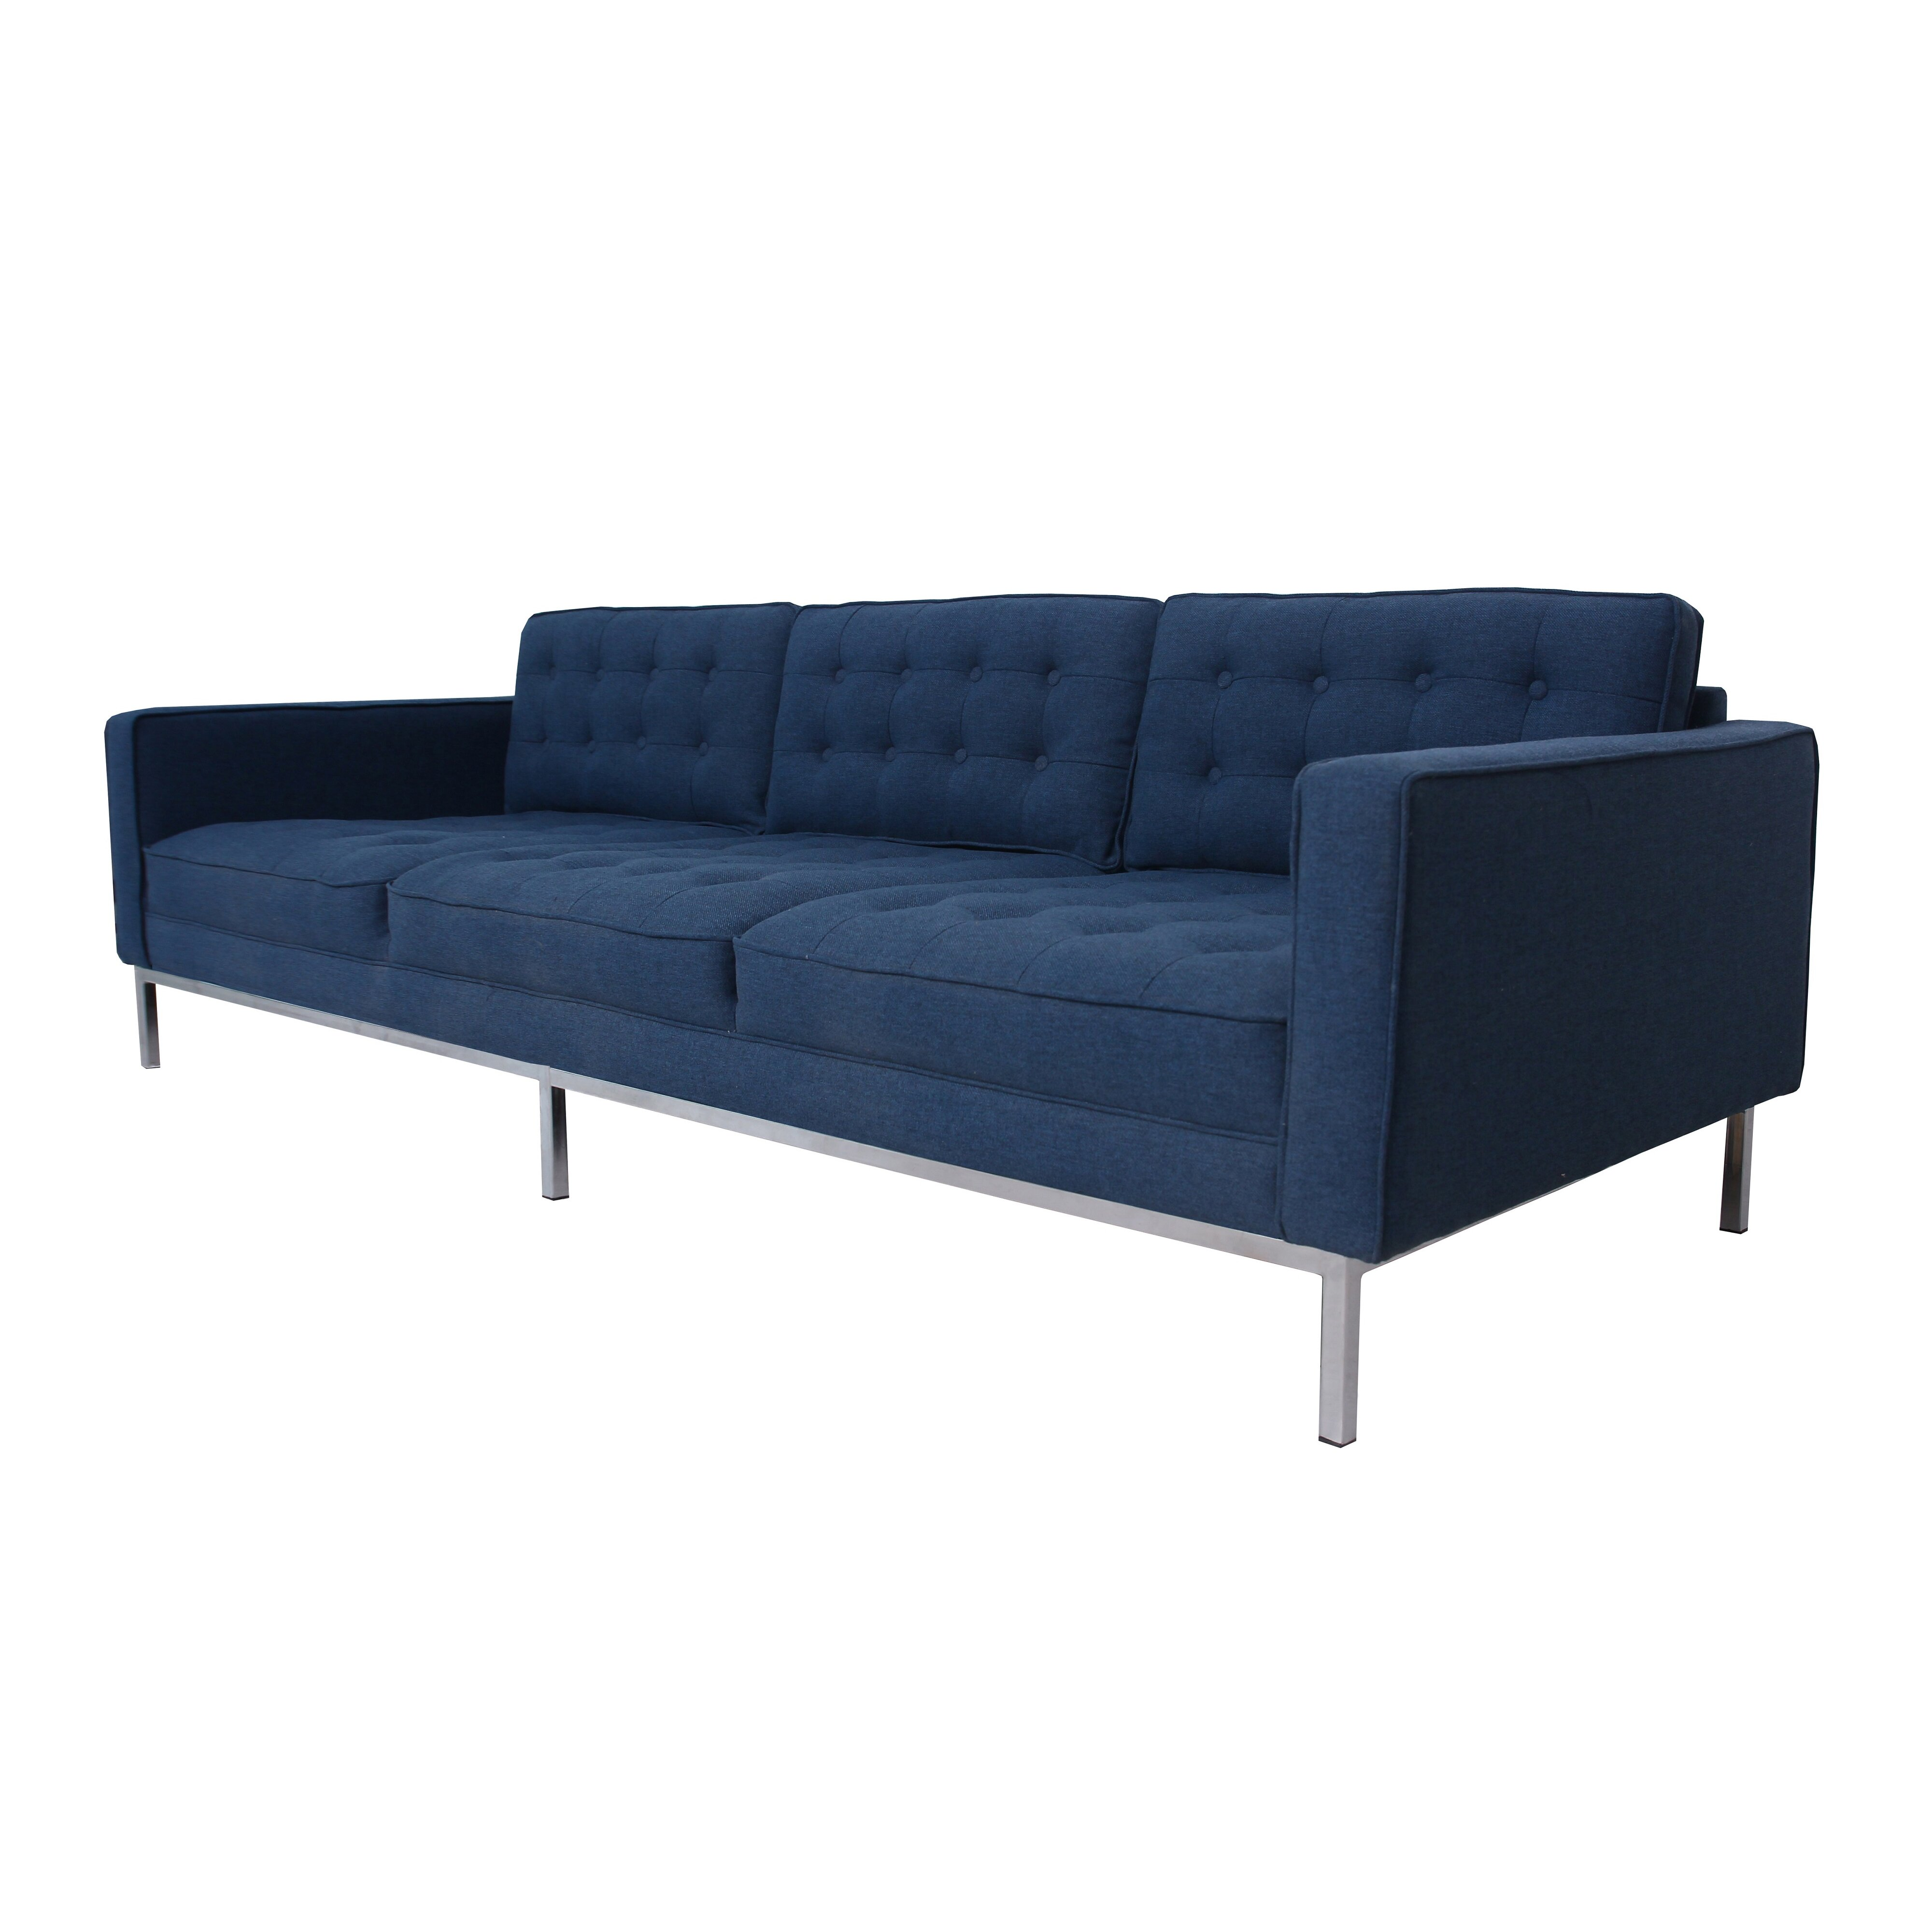 Tufted Sofa Finest Leather Tufted Sofa Gallery Sofas